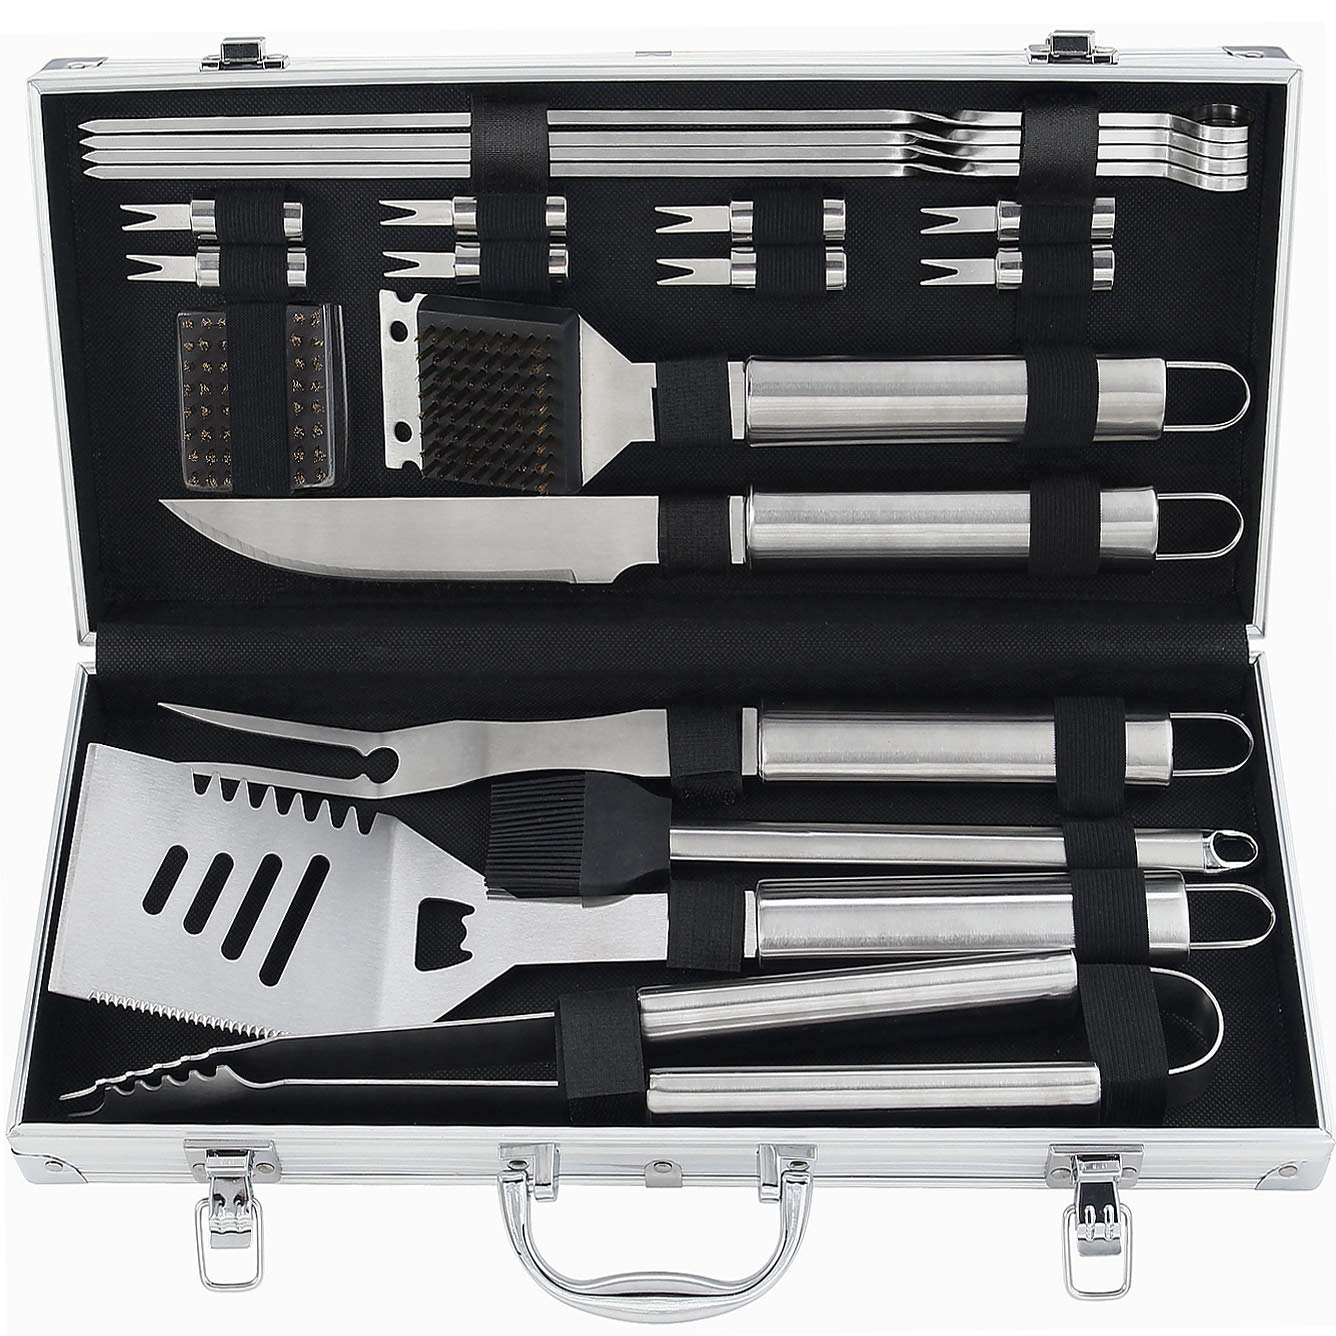 POLIGO 20pcs Barbecue Grill Utensils Kit Stainless Steel BBQ Grill Tools Set - Premium Camping Grill Accessories in Aluminum Case for Men - Ideal Outdoor Grilling Gifts Set for Birthday Christmas by POLIGO